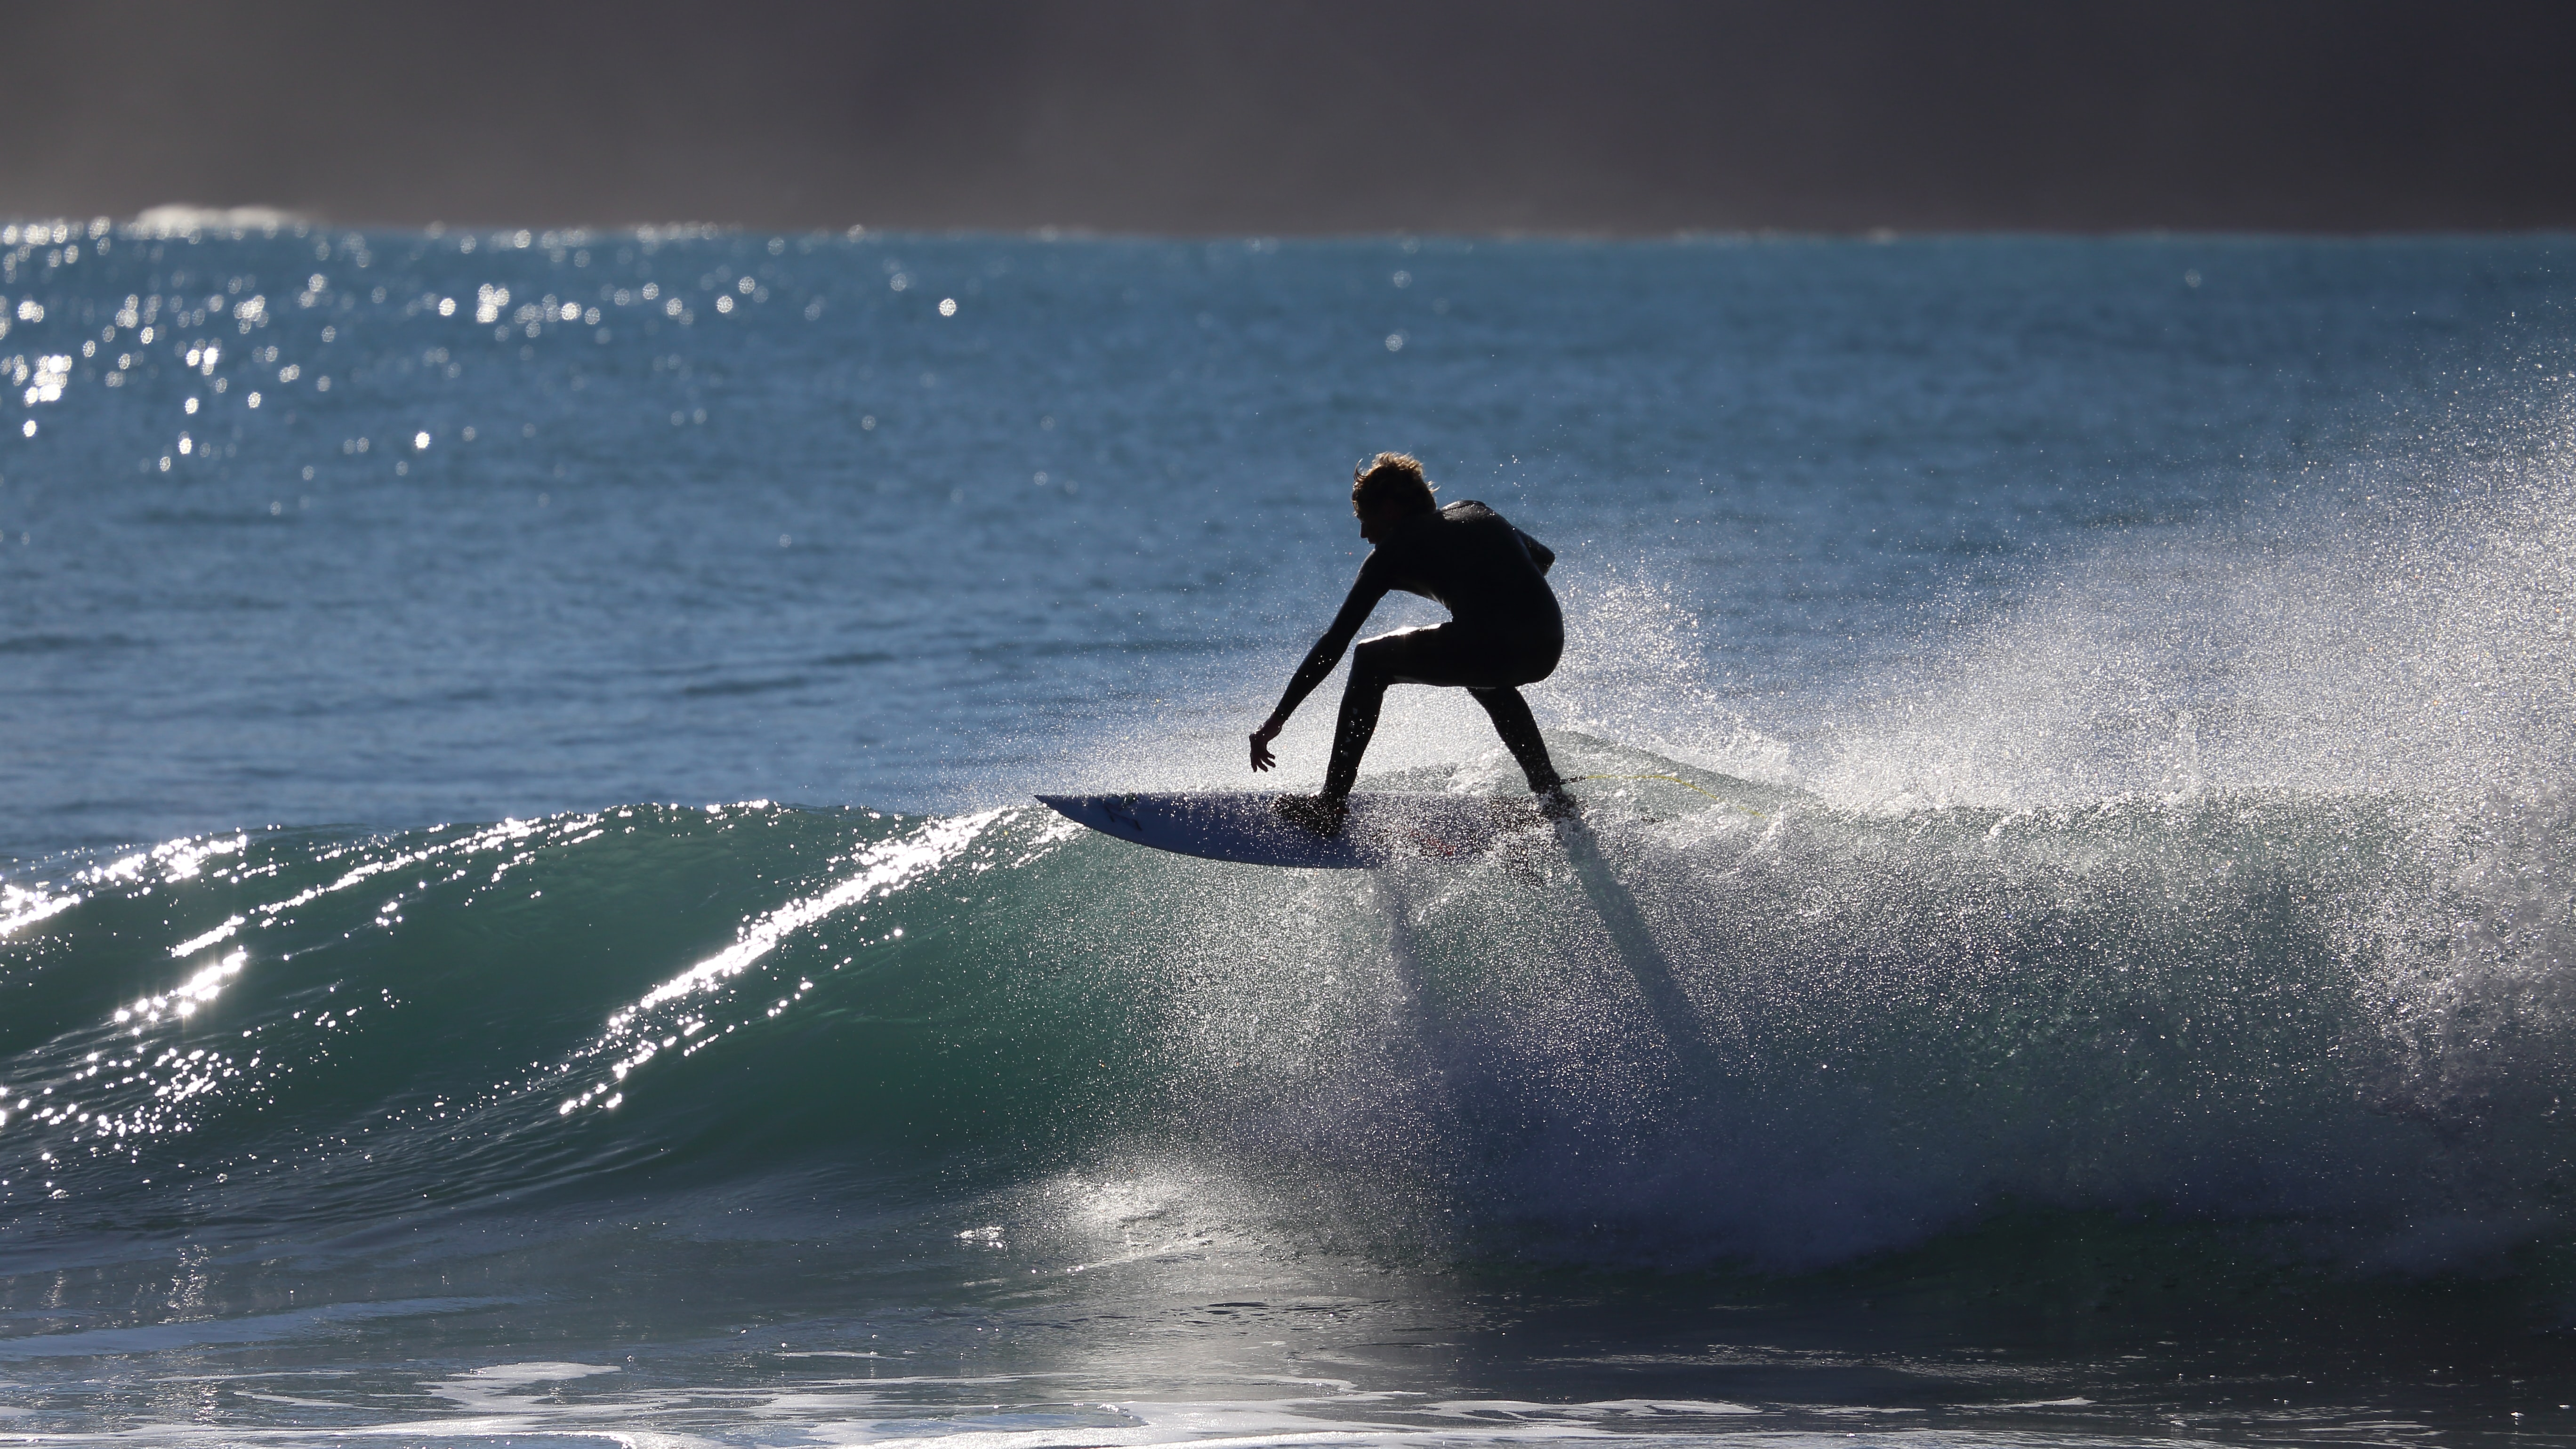 person riding surfboard on water barrel